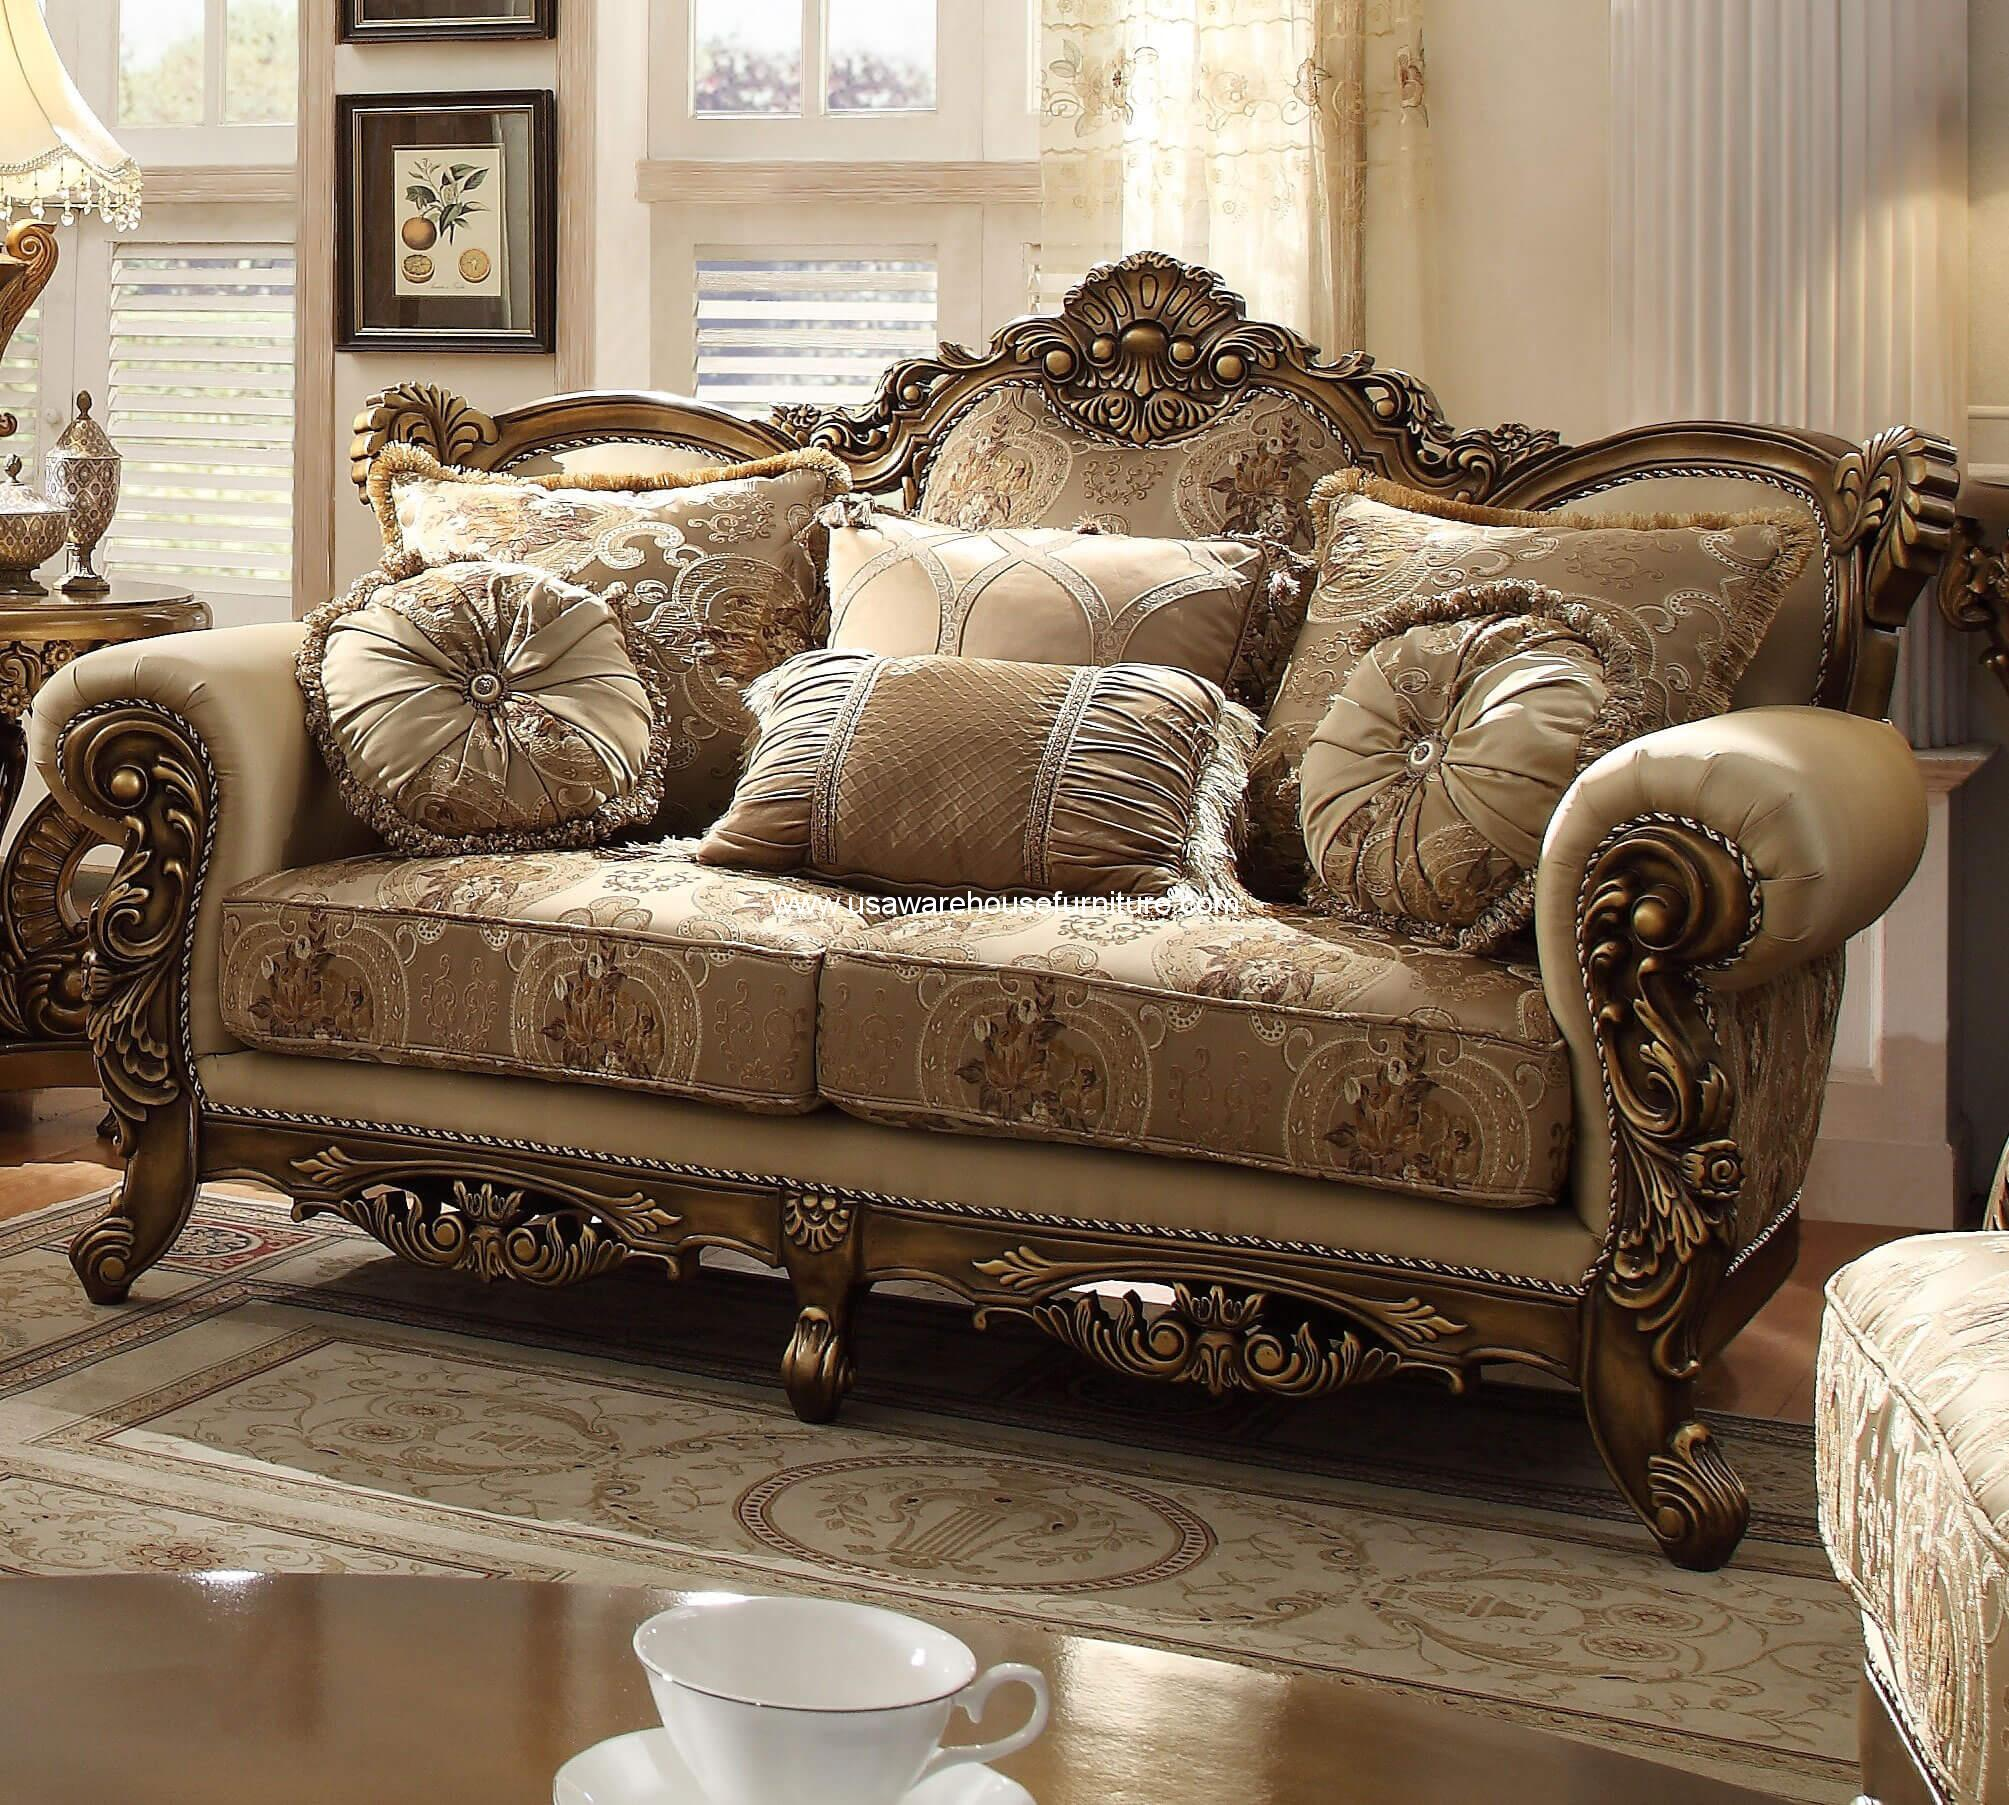 Homey Design Hd 506 Vienna Loveseat Usa Warehouse Furniture